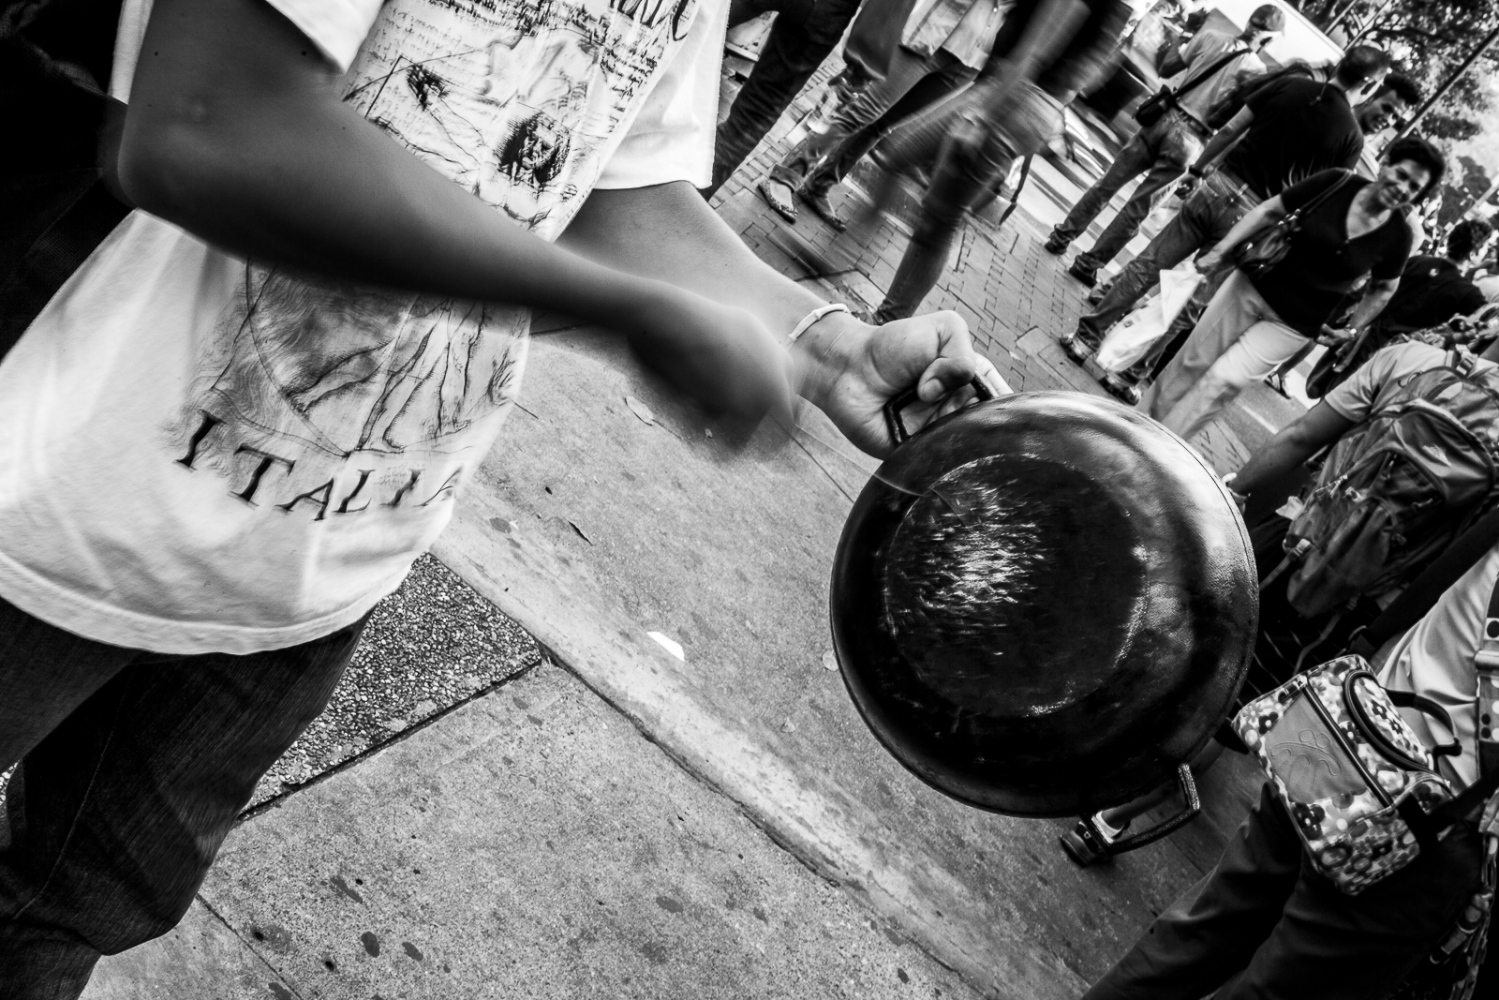 Cacerolazo, a man makes some noise with a cooking pot during a student protest in Altamira 21st March 2014. The demontrations and confronts started on February 4th, cause 42 dead, hundreds of injured and 1030 detained since the movement against the Government of President Nicolas Maduro started.